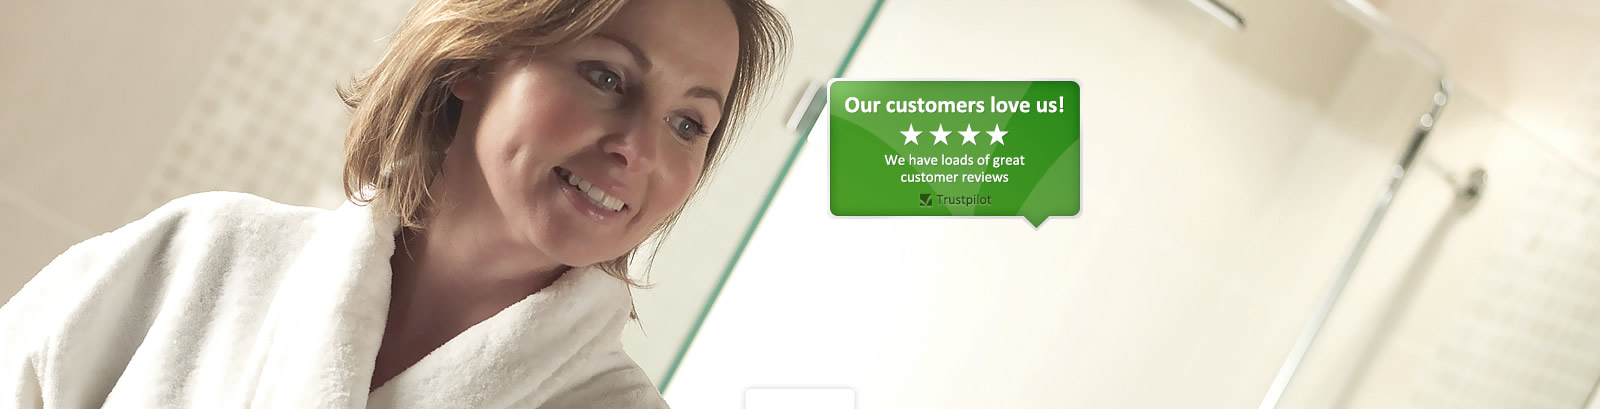 Trustpilot reviews for BHS-Home Improvements